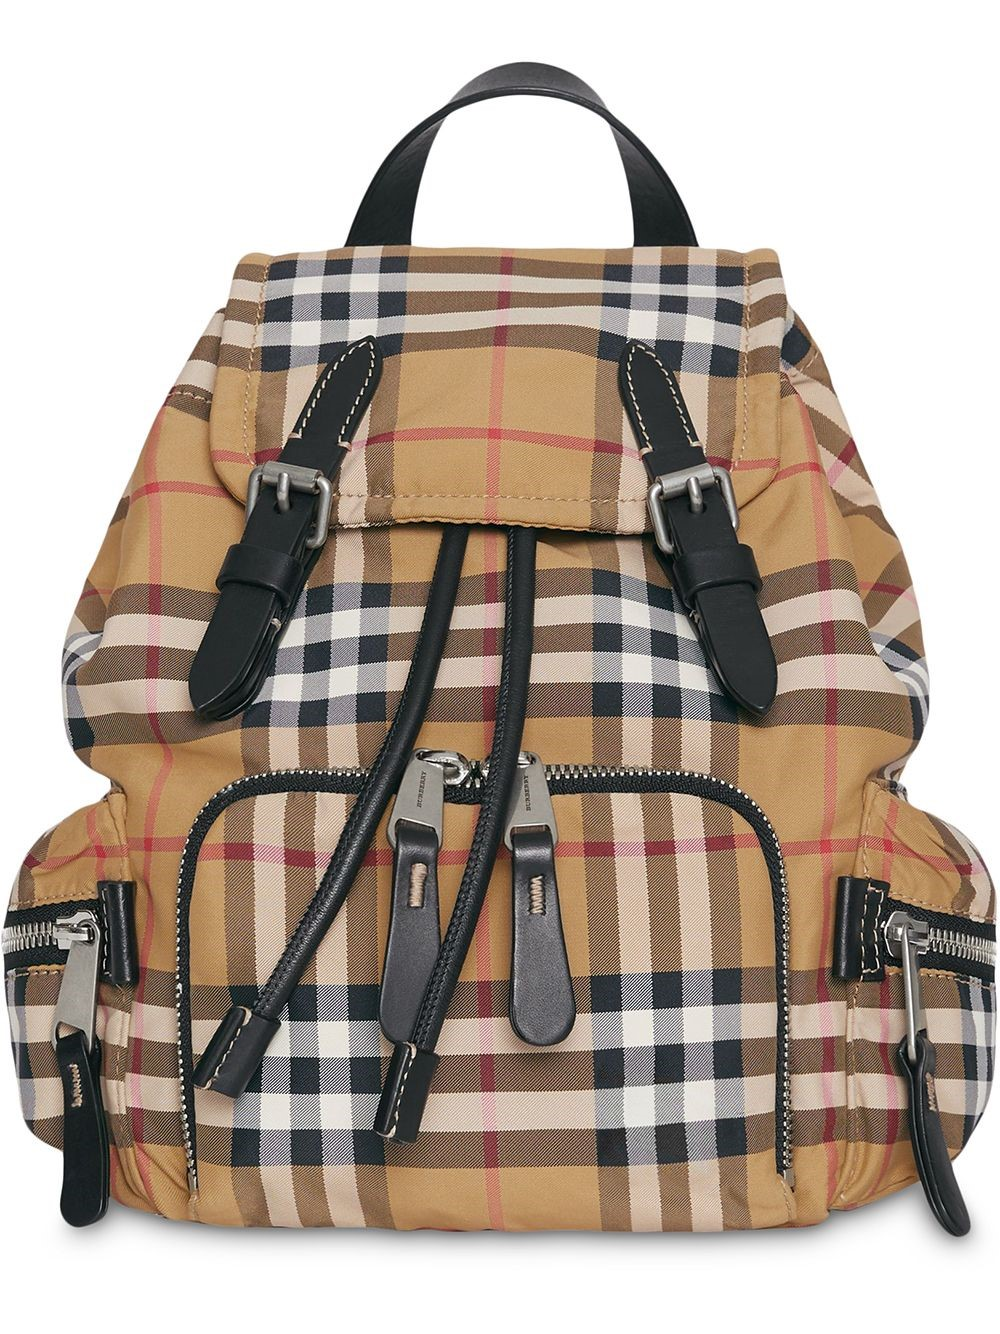 c2b58af2bdb9 burberry london england BACKPACK available on montiboutique.com - 26164